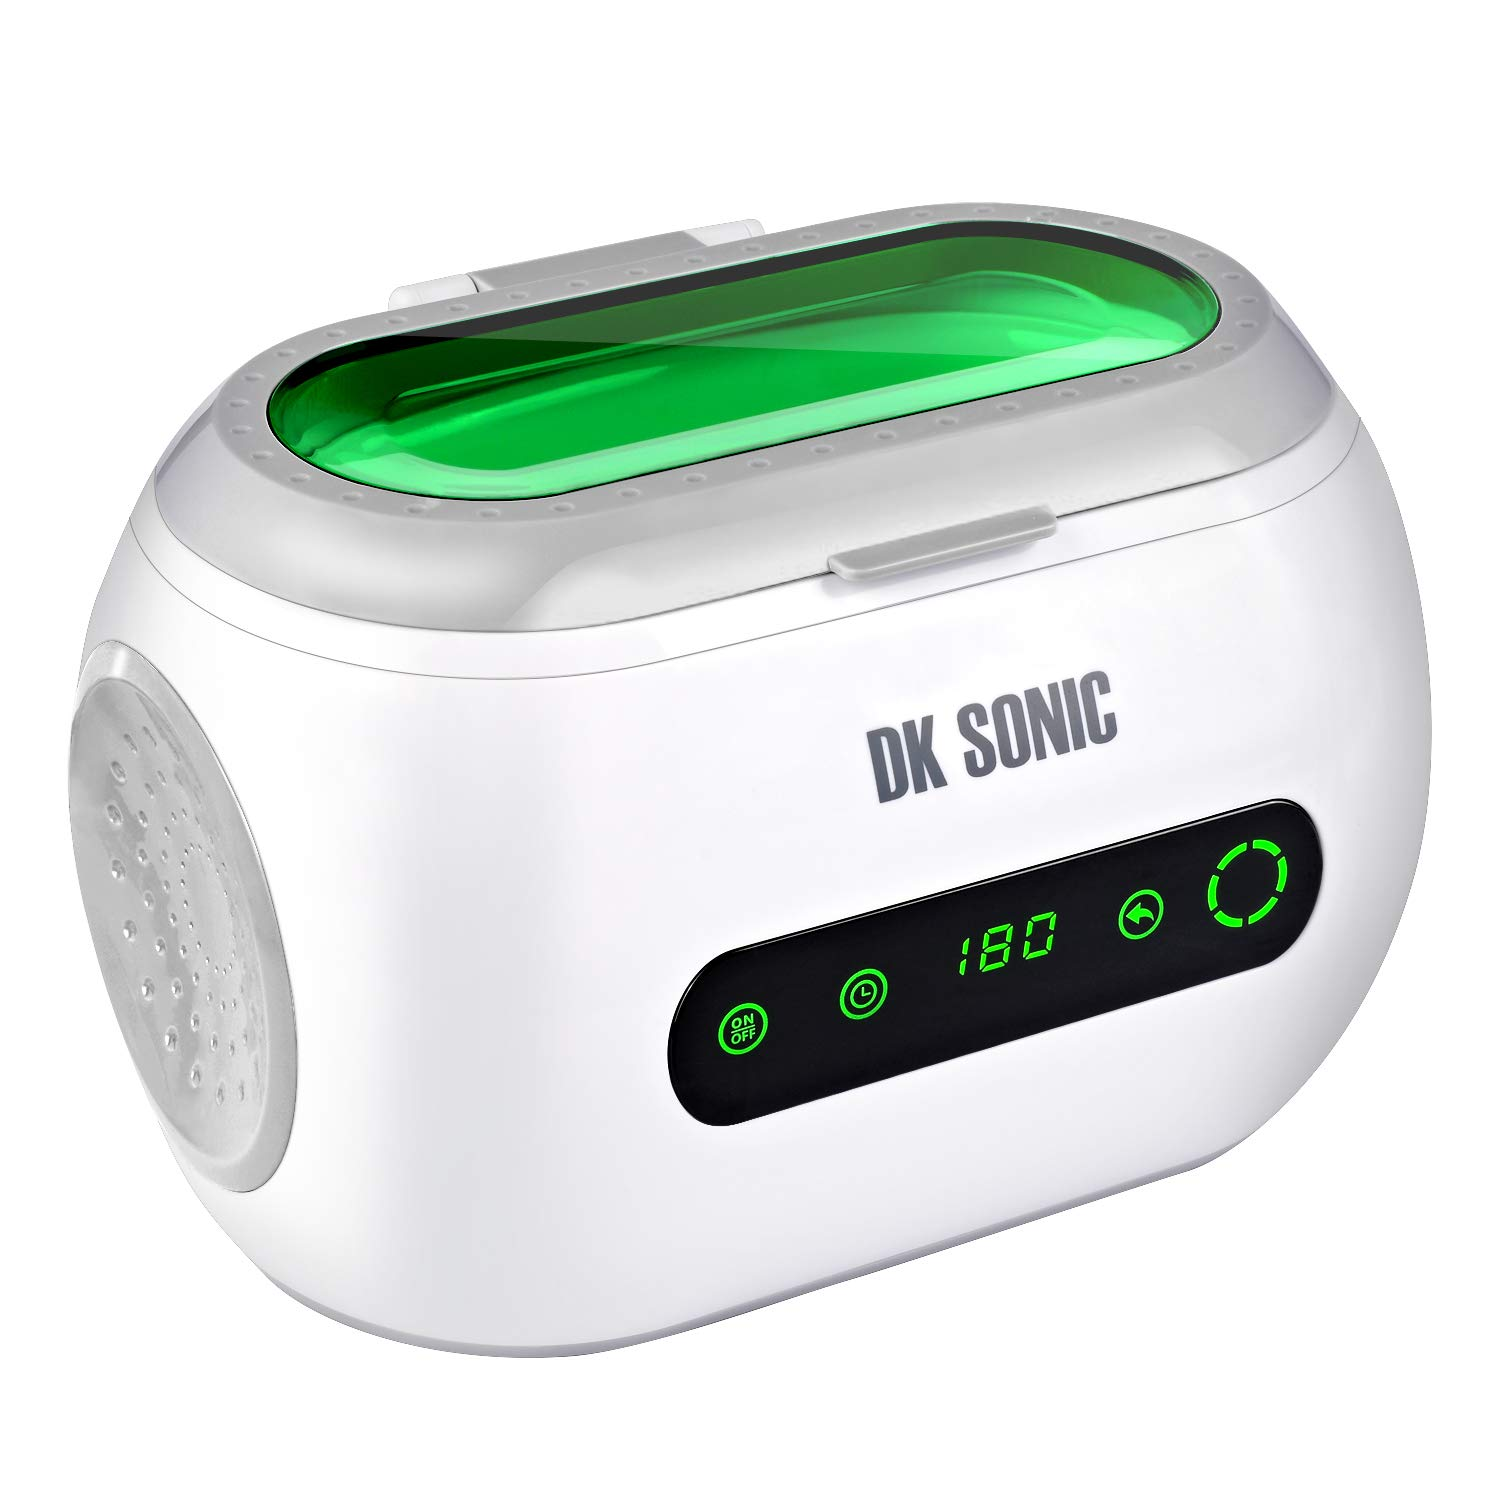 Mini Ultrasonic Cleaner - DK SONIC 600mL 42KHz Sonic Cleaner with Digital Timer and Basket for Jewelry,Ring,Eyeglasses,Denture,Watchband,Coins,Small Metal Parts,Daily Necessaries,Tattoo Equipment,etc by DK SONIC